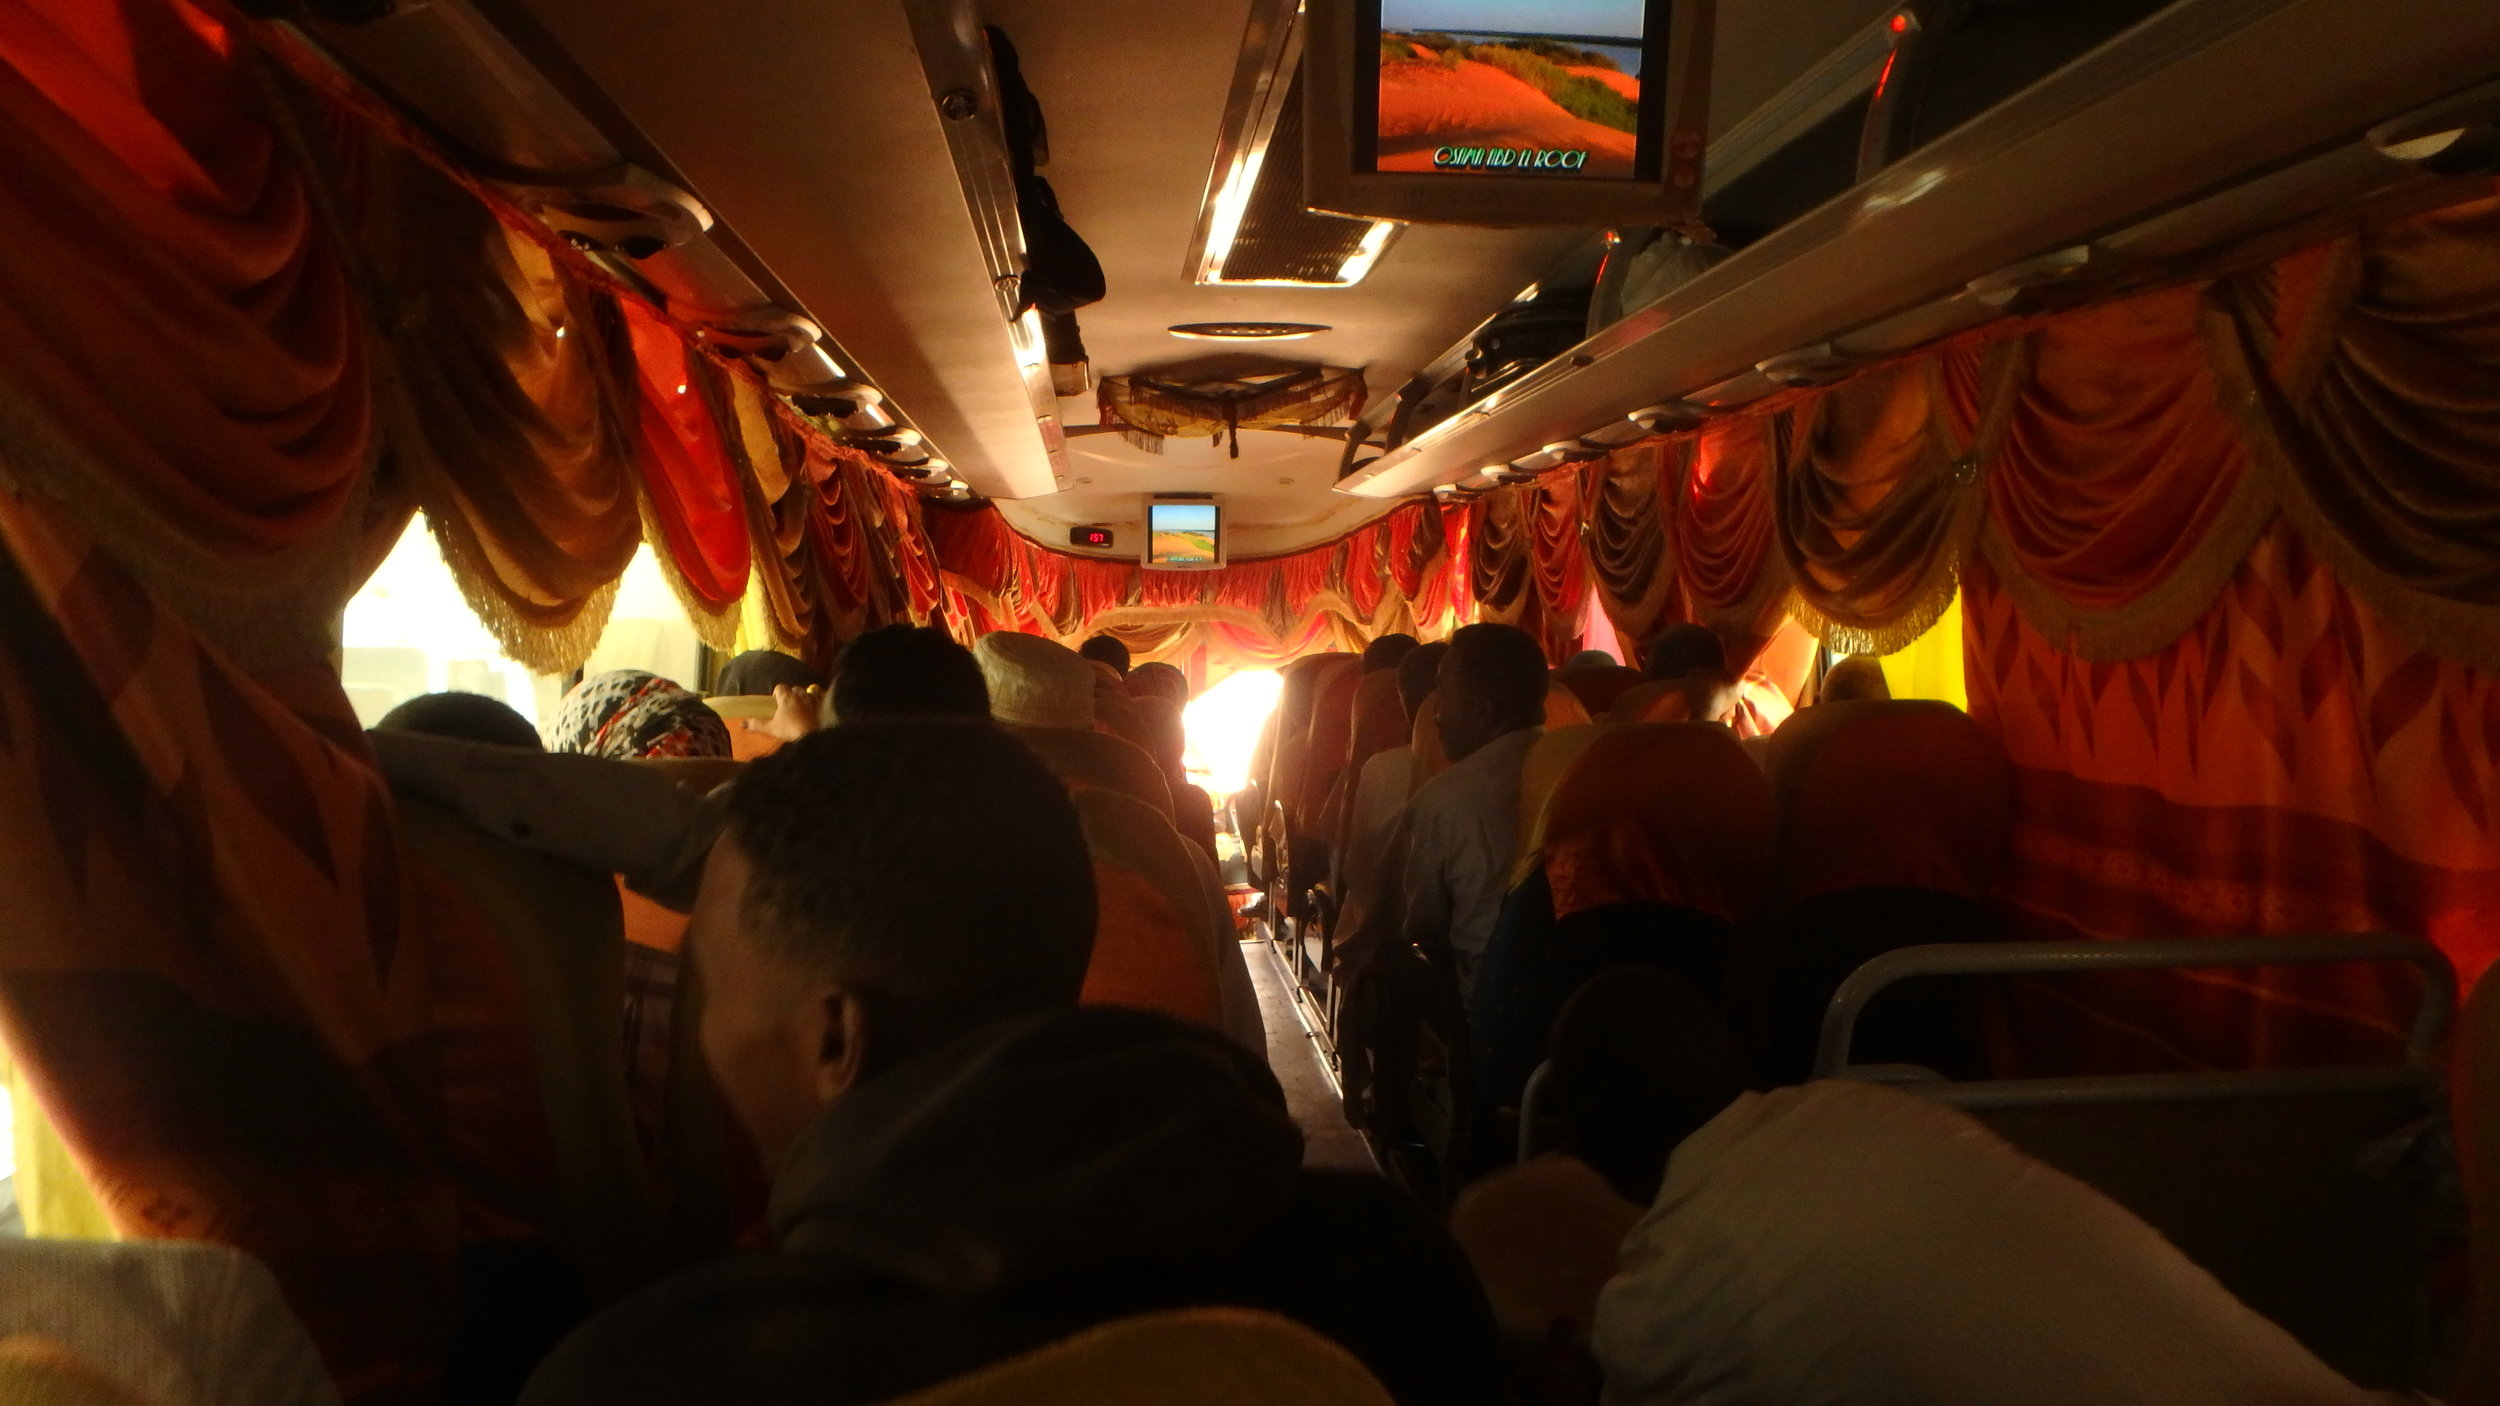 A typical scene on a Sudanese long distance bus, where keeping cool is the name of the game.